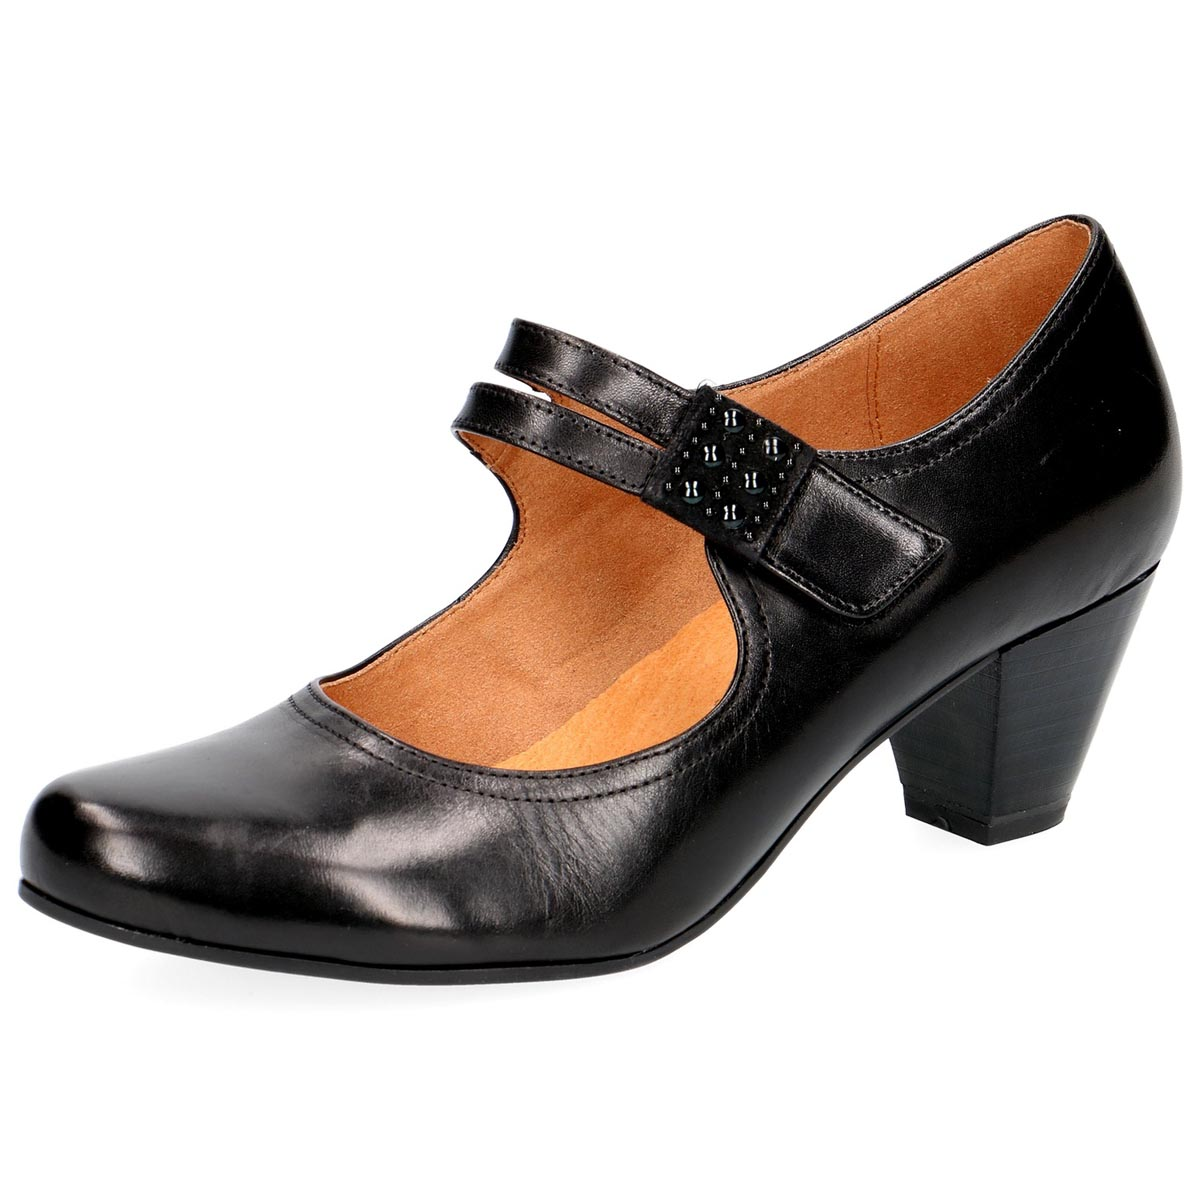 Caprice - Bernie Black Leather Court Shoe